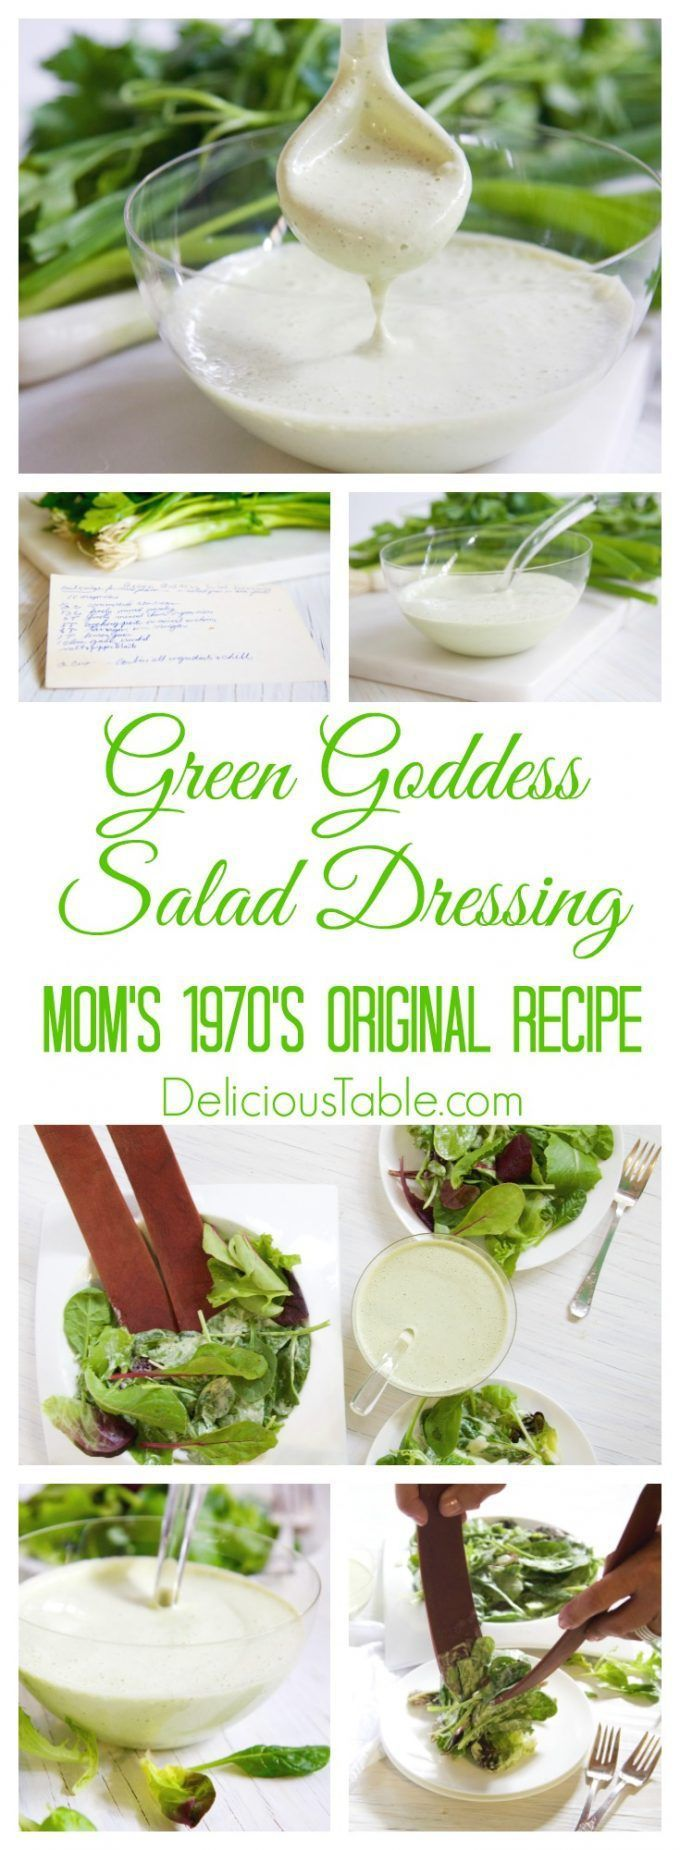 Mom's Original 1970's Green Goddess Salad Dressing is divine over a simple salad mix. Bursting with fresh herb flavor, and a very popular in the 1970's!